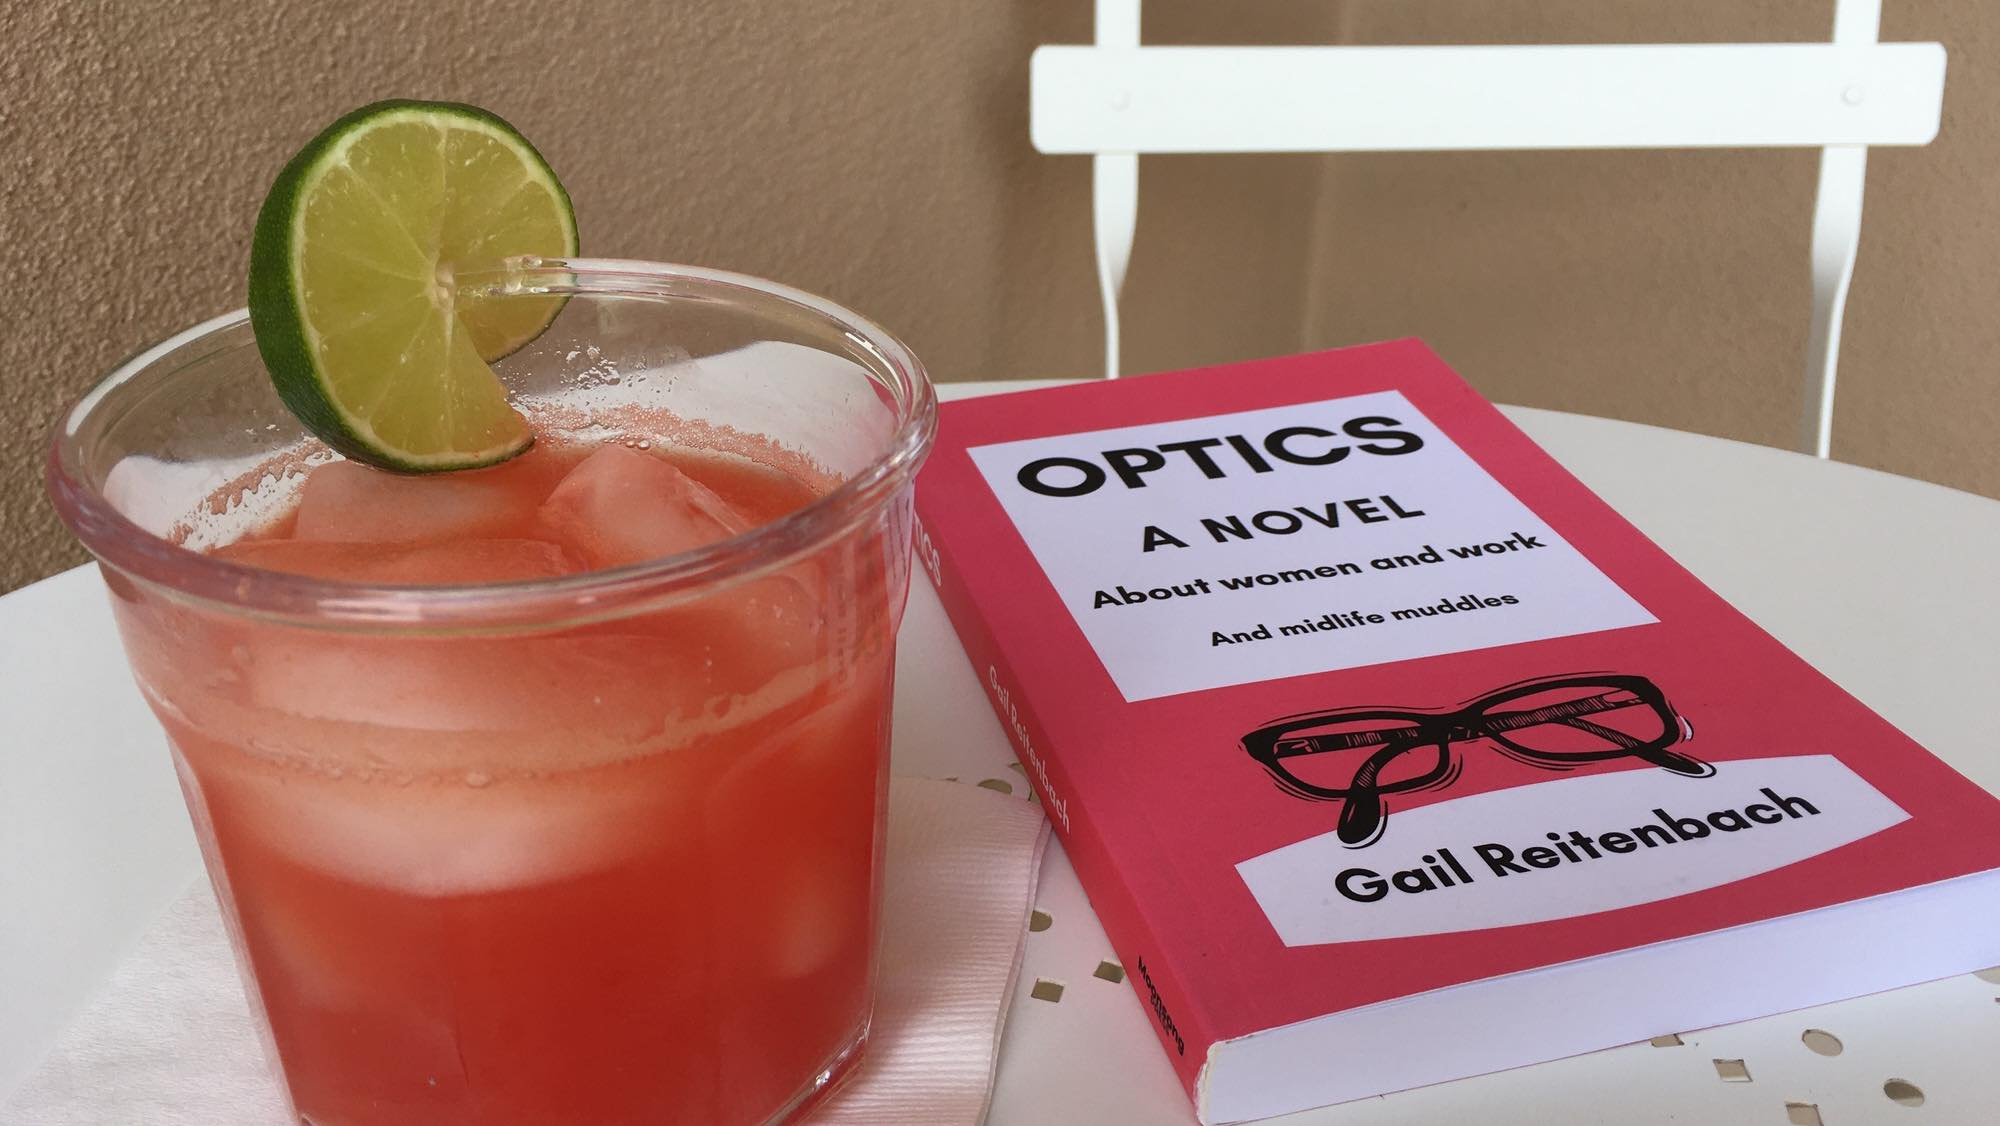 Watermelon agua fresca and Optics